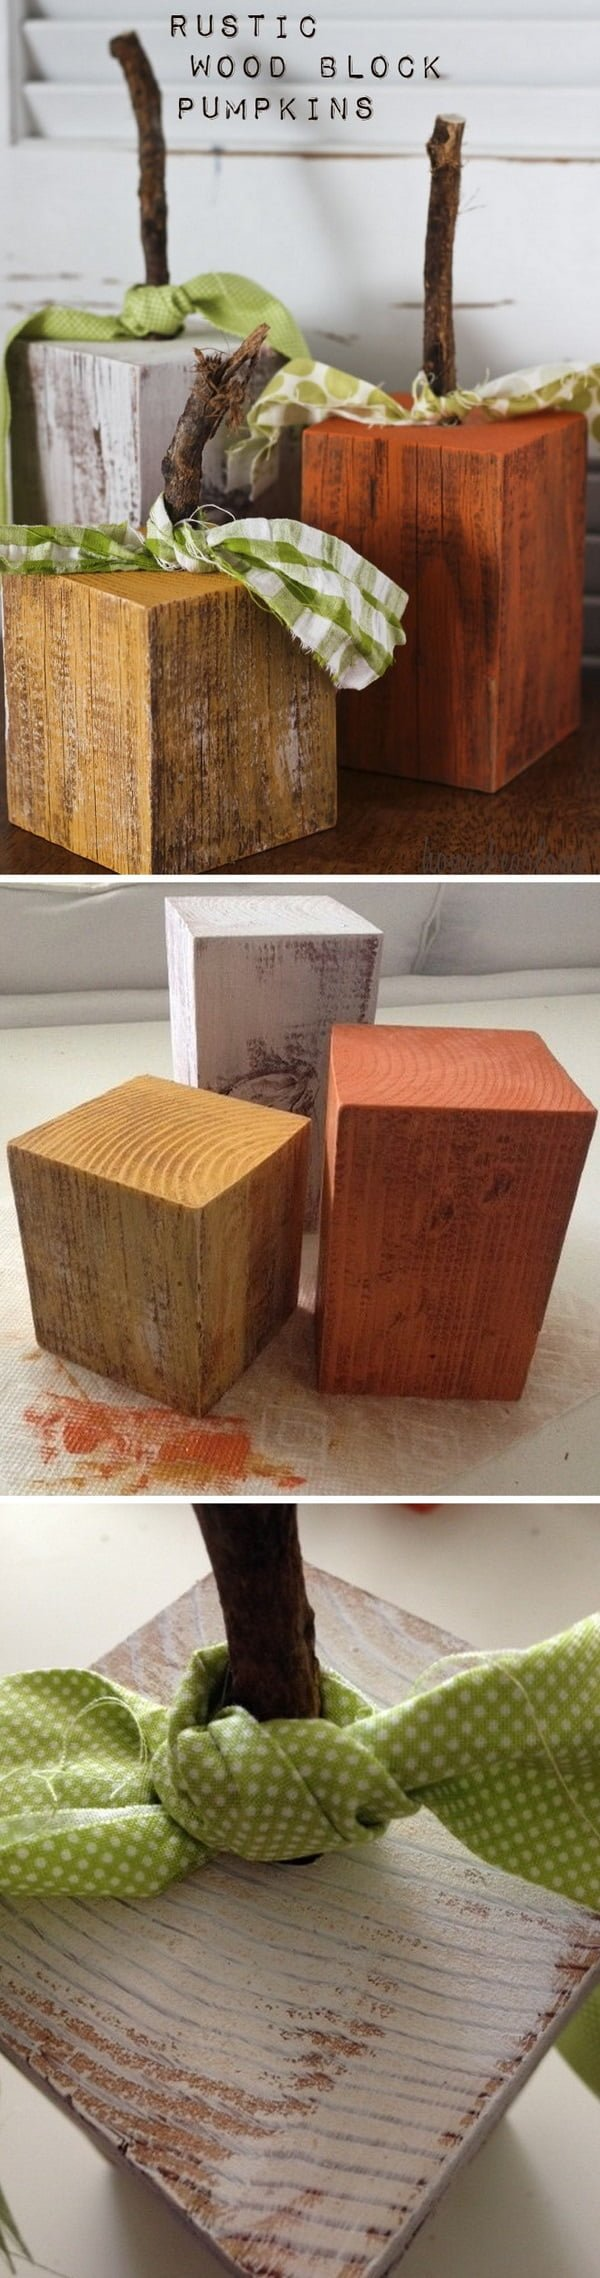 Check out the tutorial on how to make #DIY #rustic wood block pumpkins #woodworking #homedecor #fall